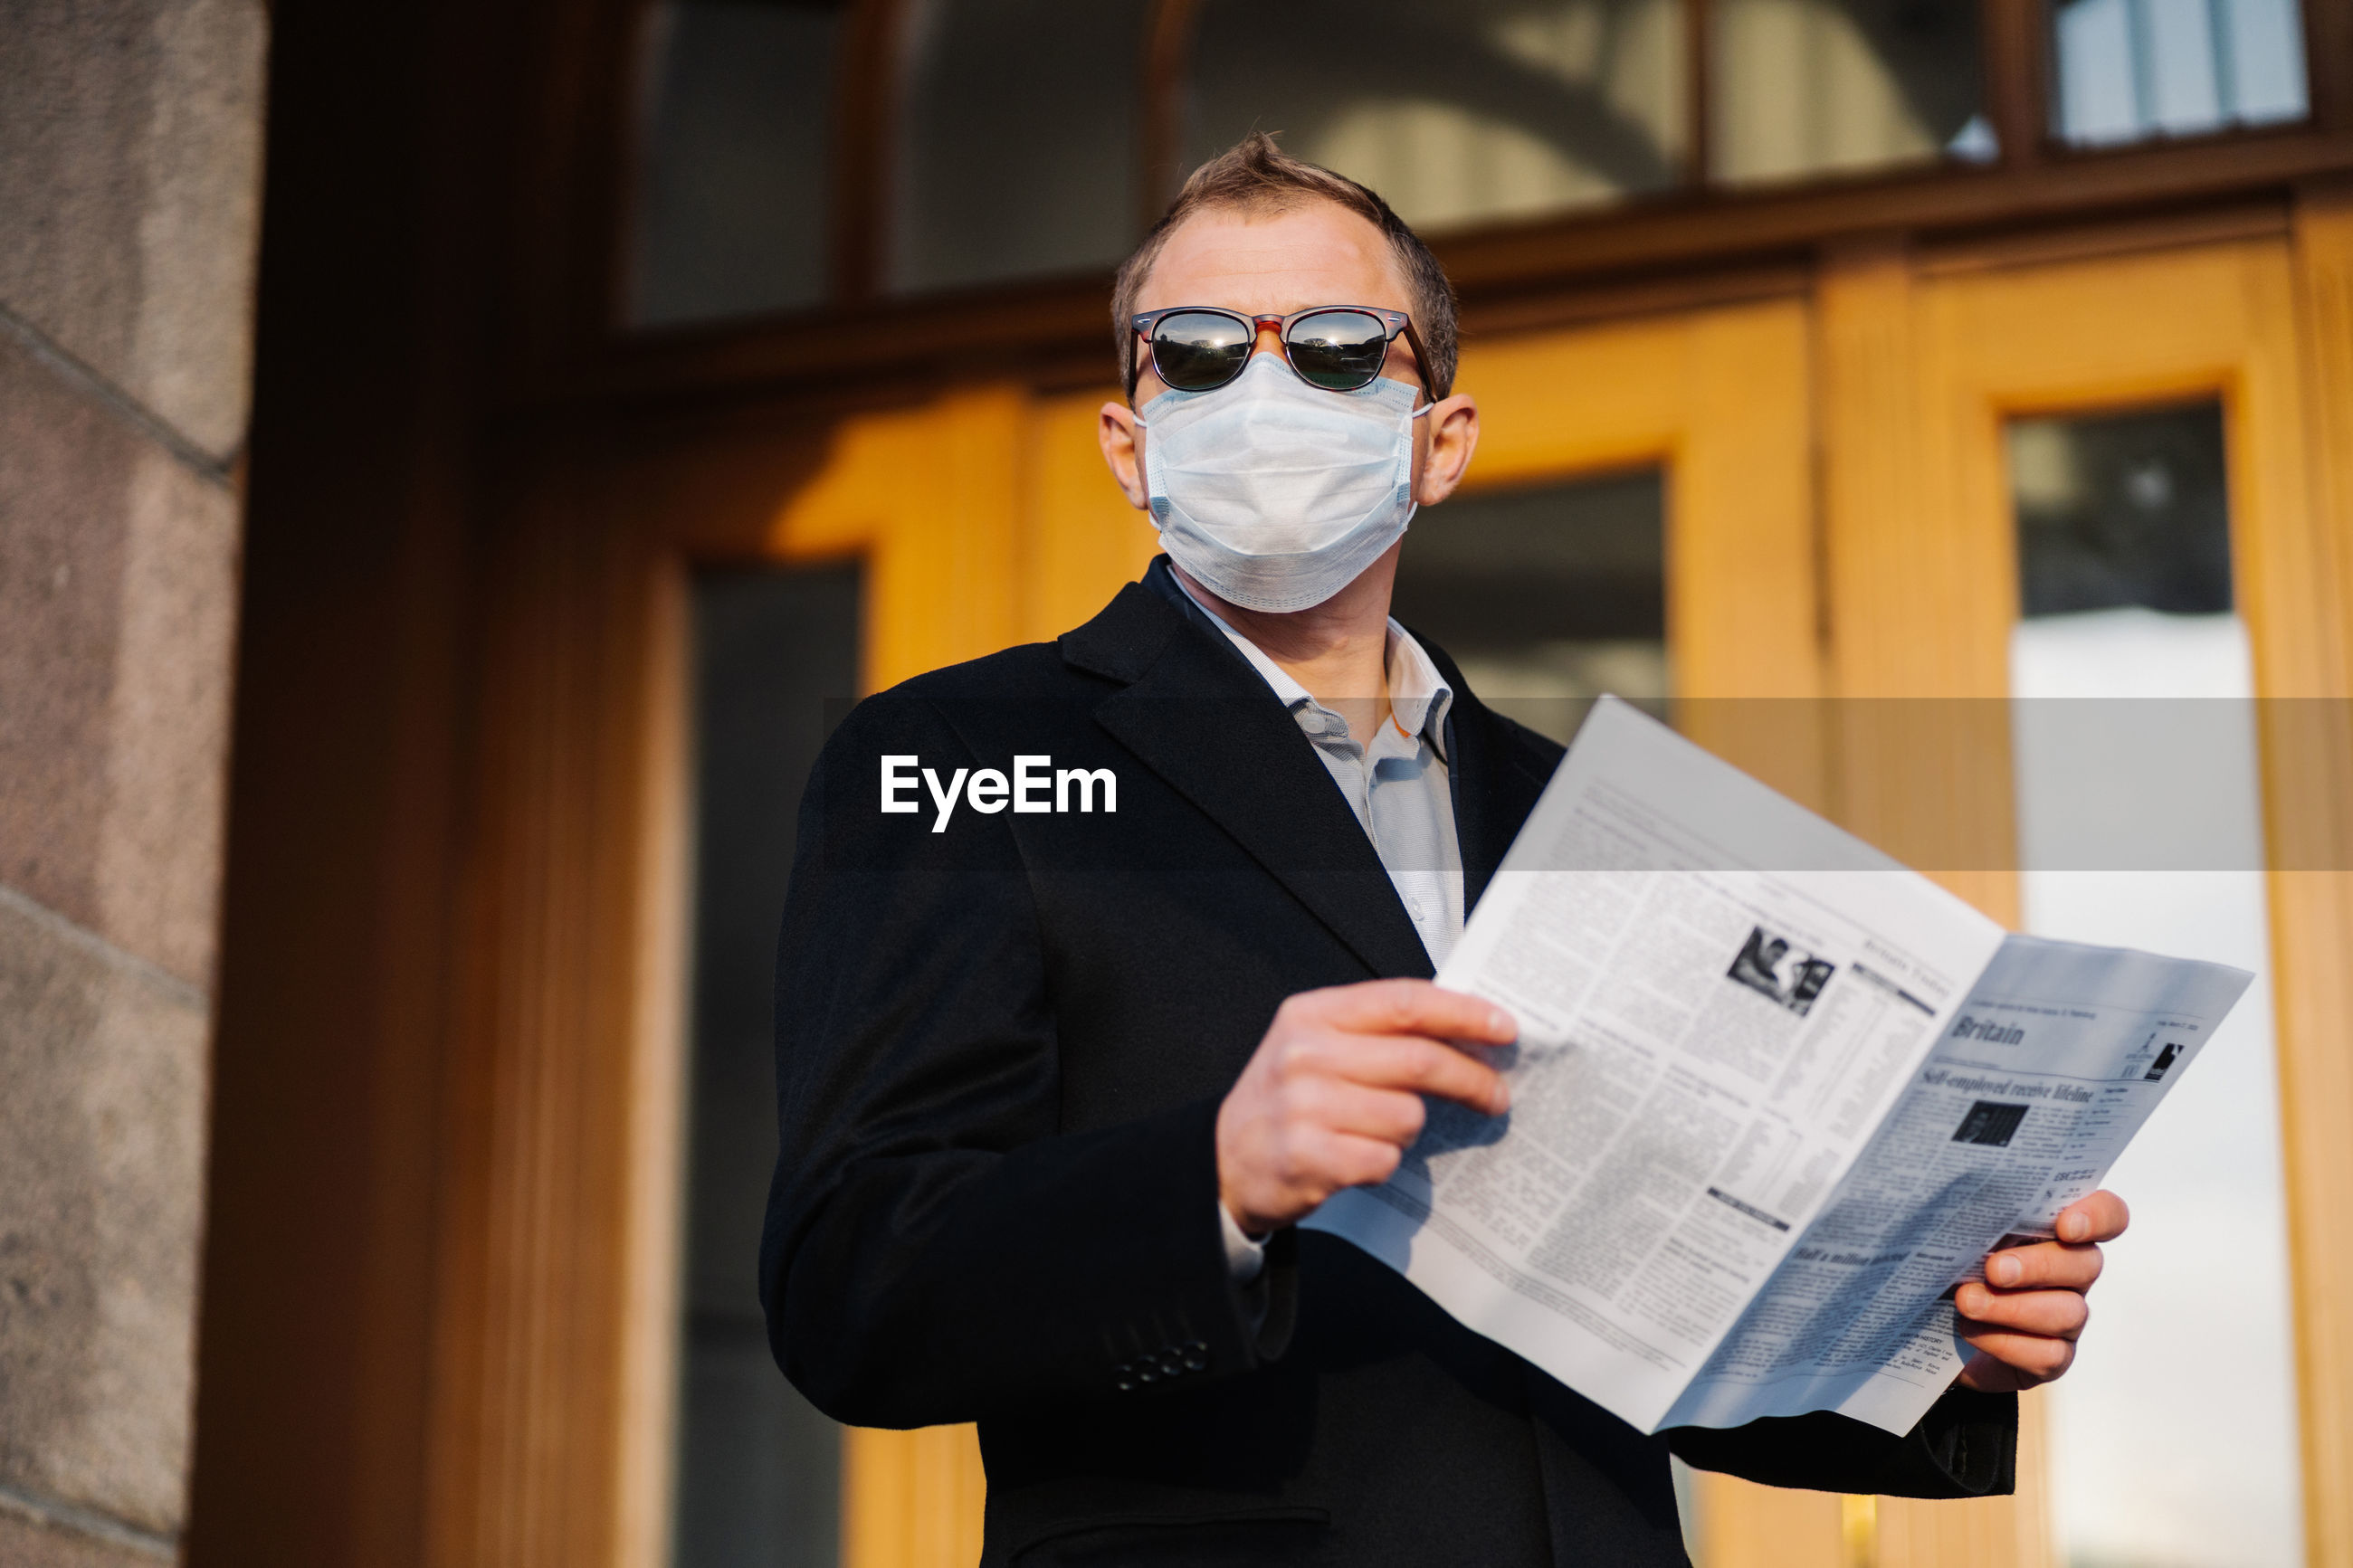 Businessman wearing mask while standing with newspaper in city